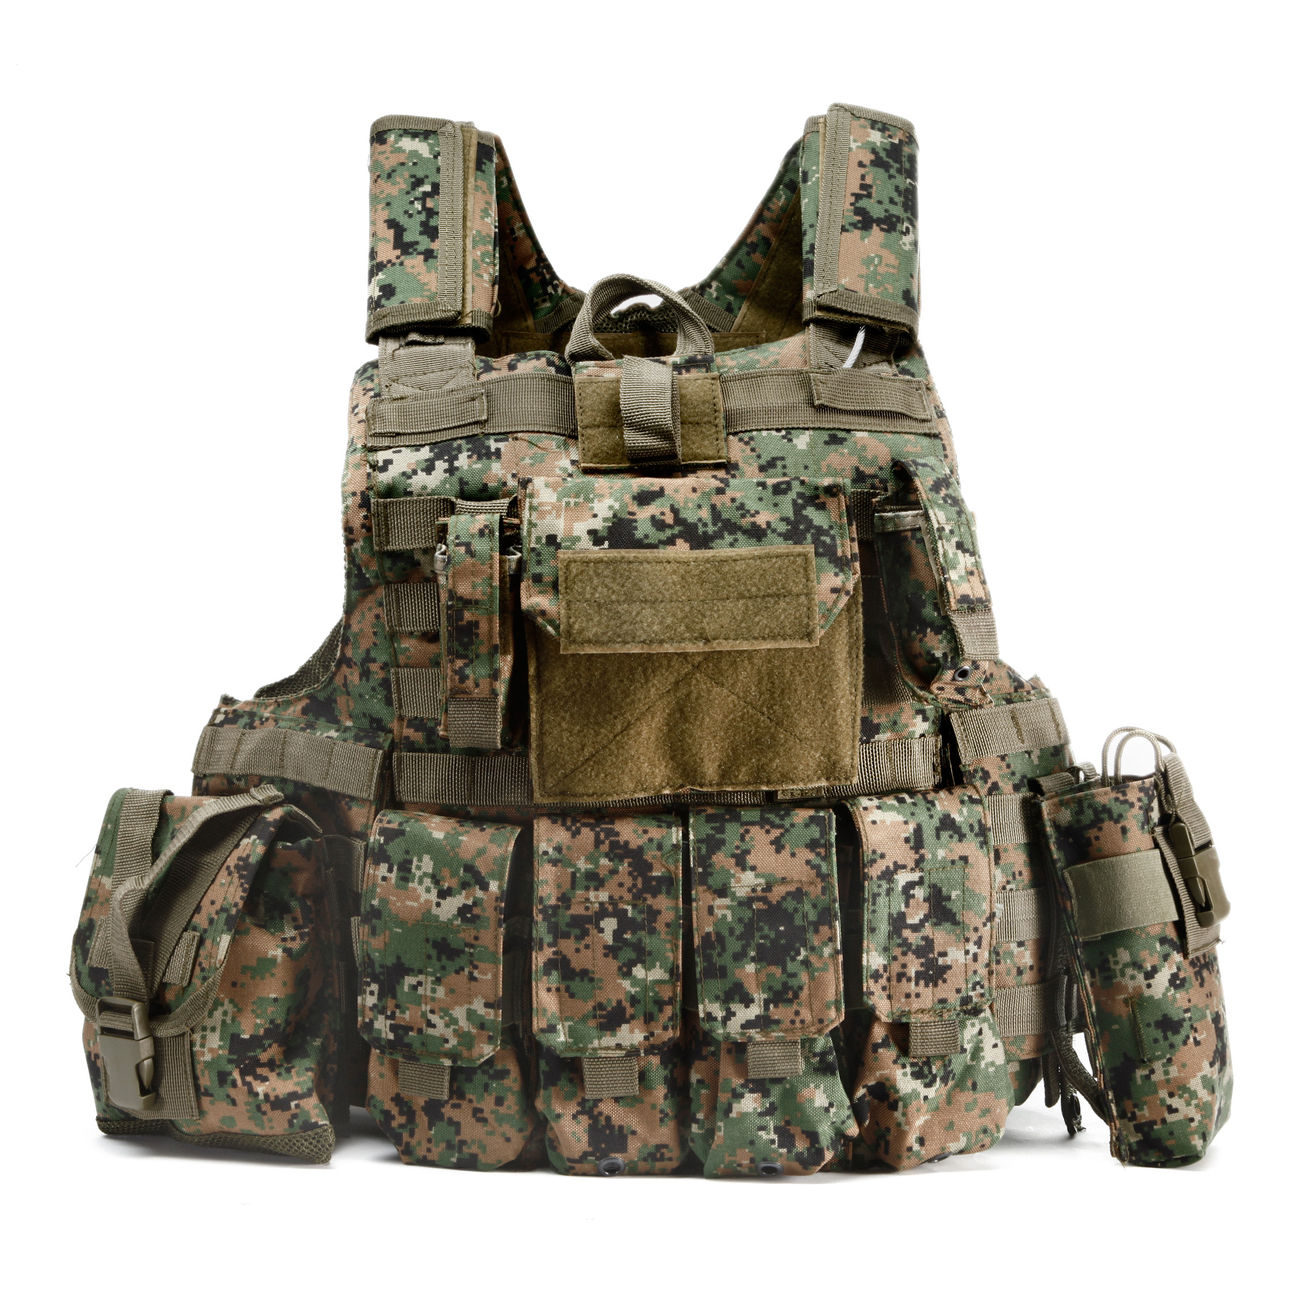 101 INC. Raptor Tactical Vest digital camo 0